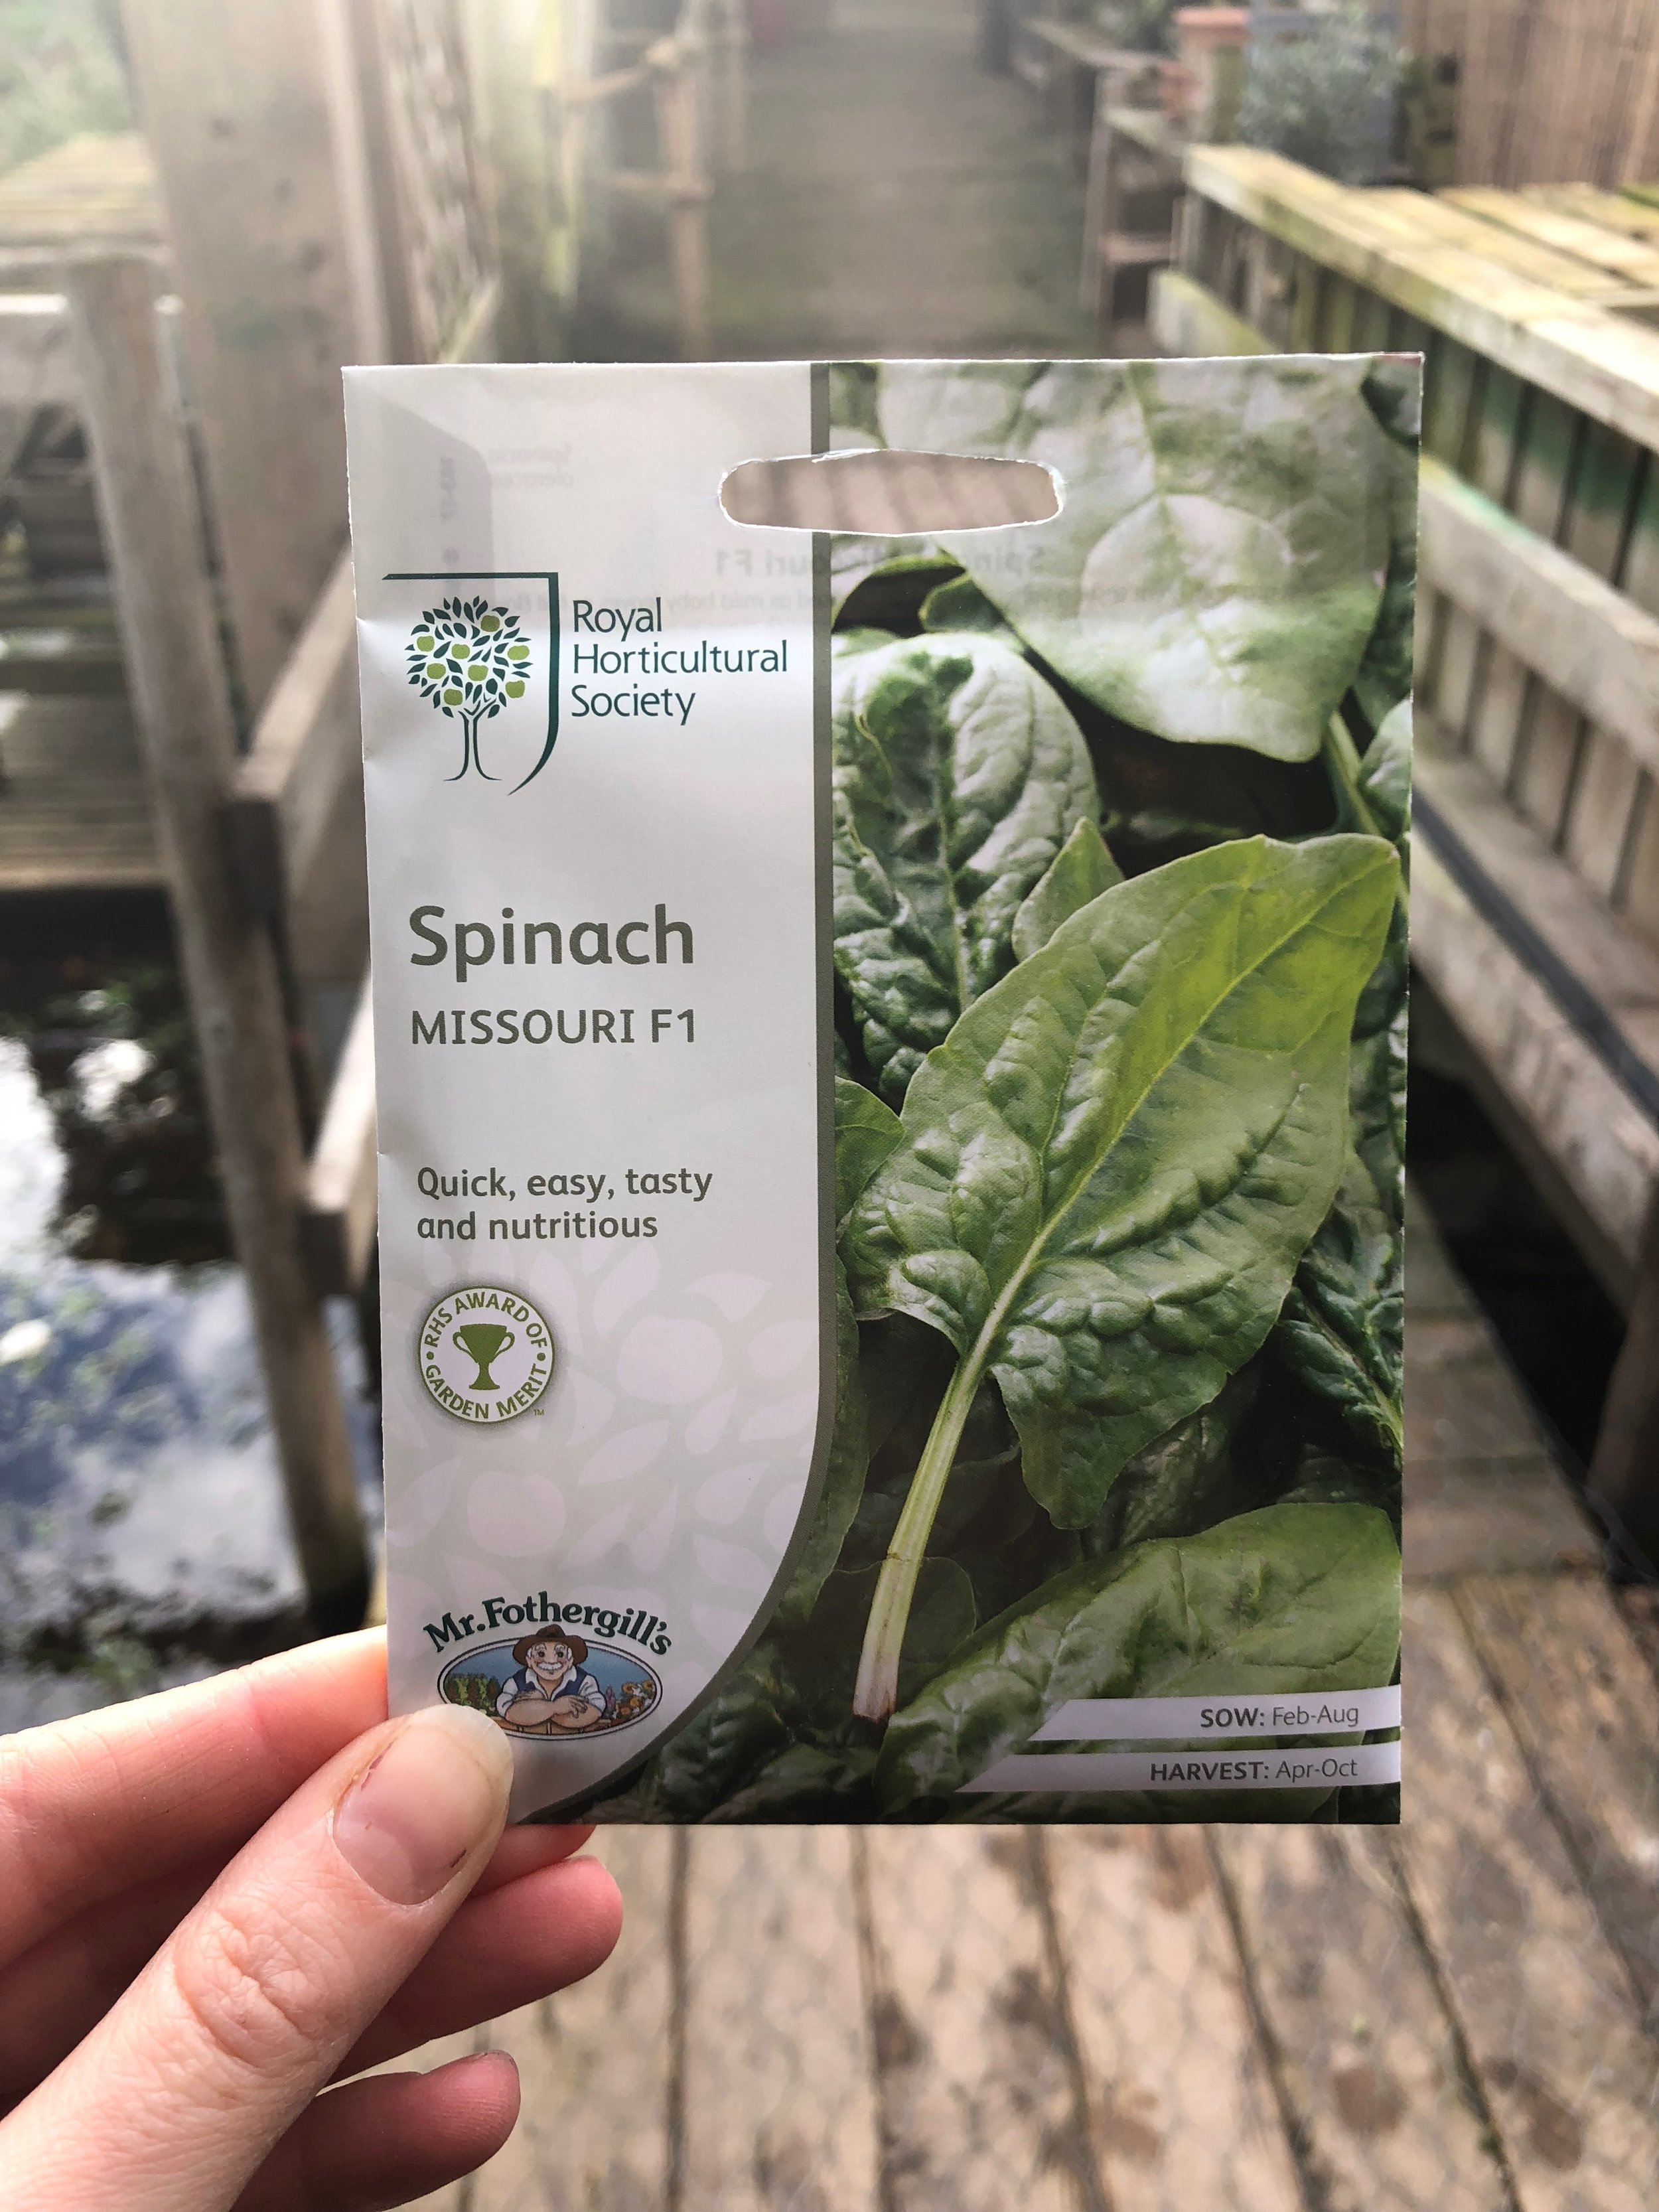 RHS Spinach seed packets ready to be sown